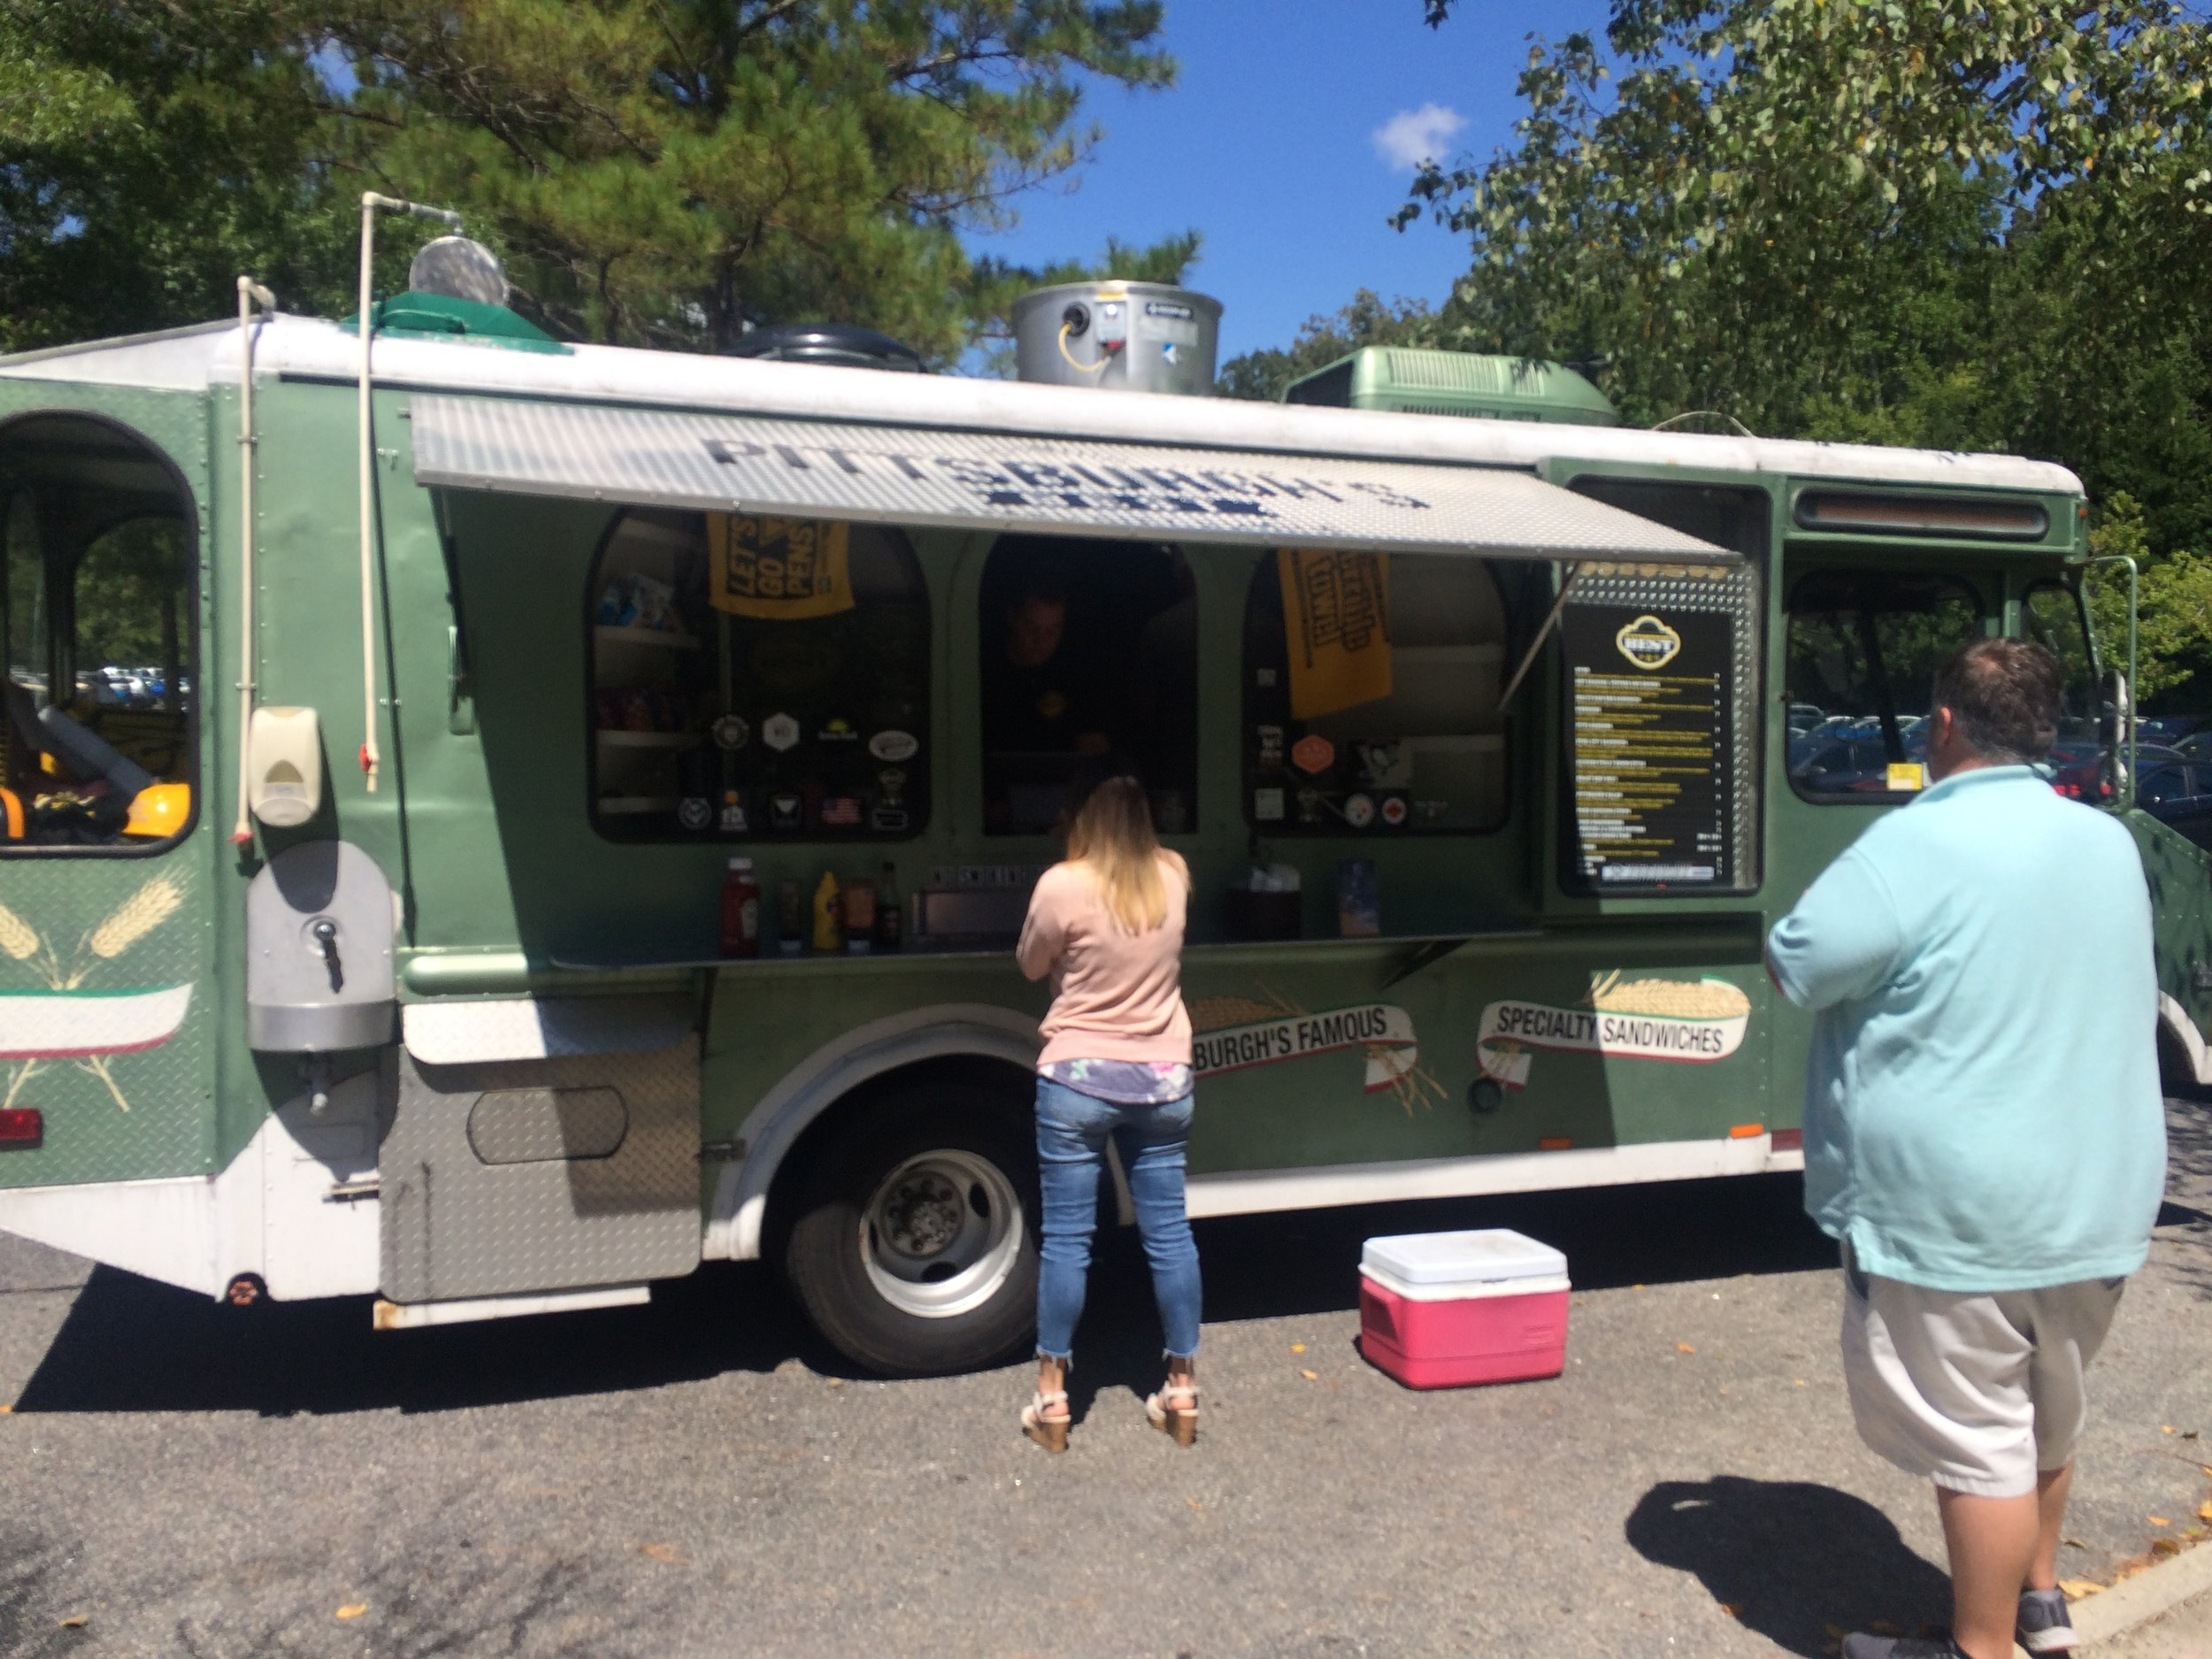 Pittsburghs-Best-food-truck